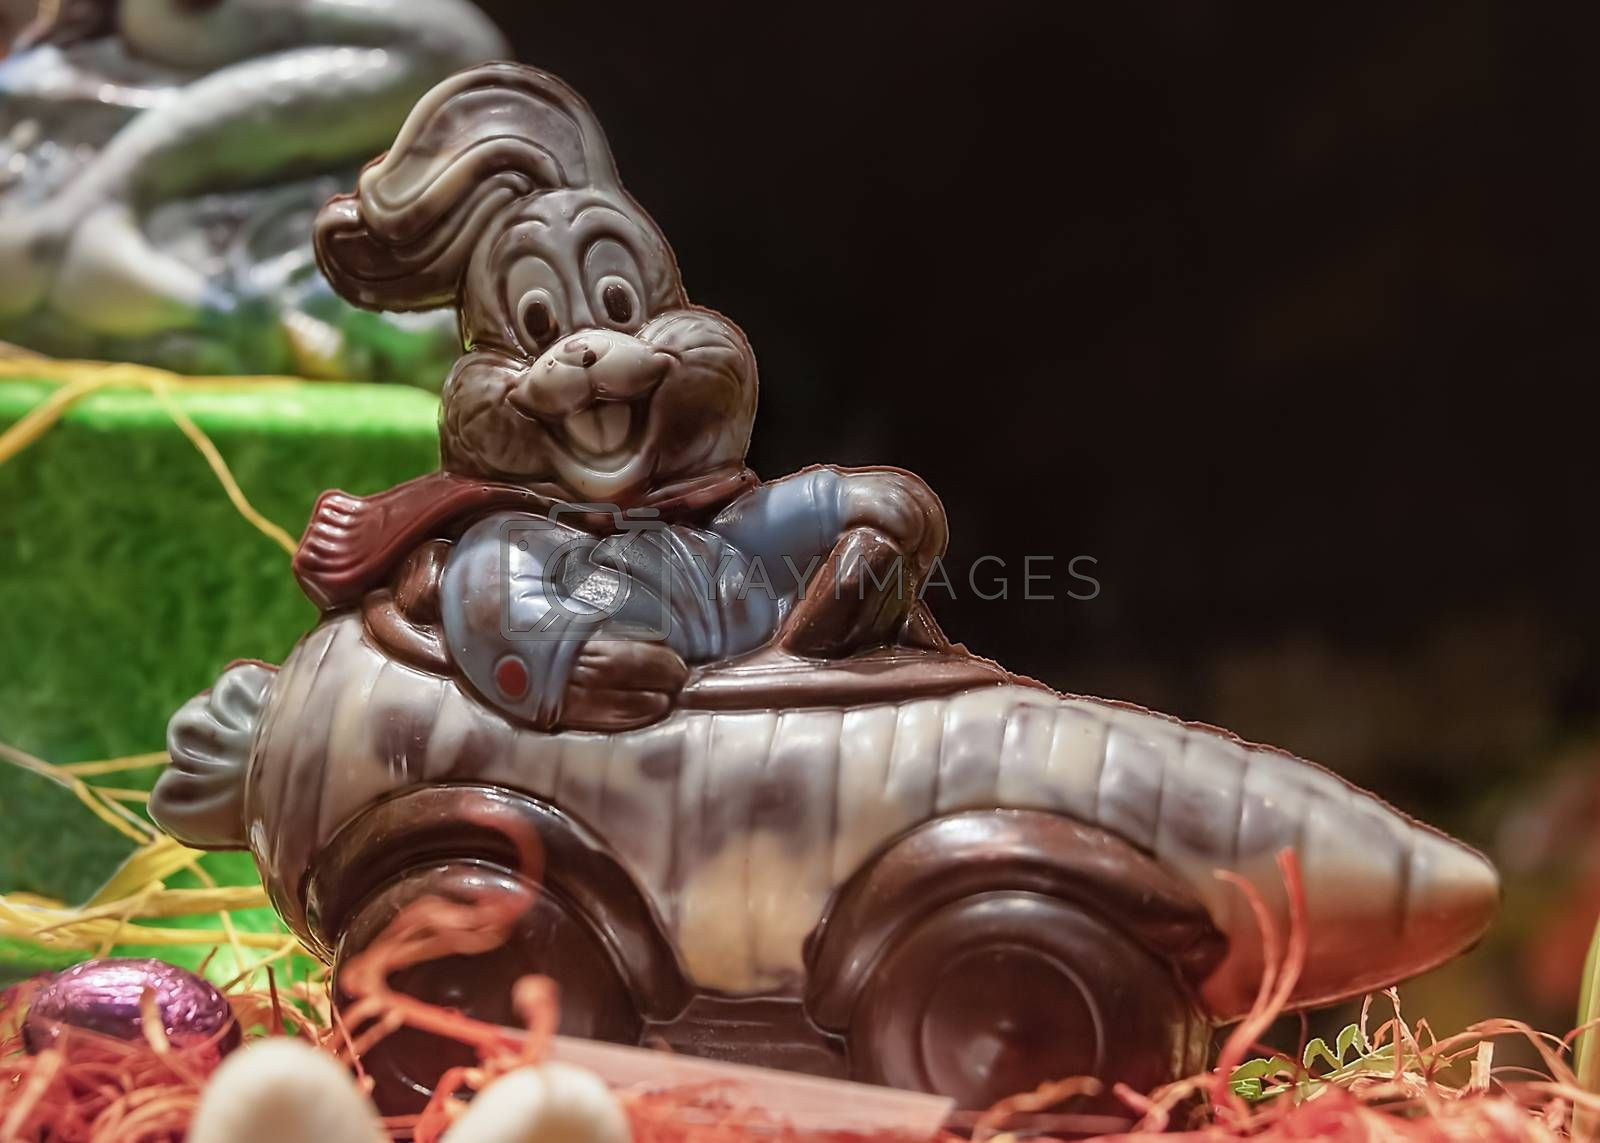 France, Strasbourg - May 2018: Chocolate Easter bunny - driving a carrot shaped car